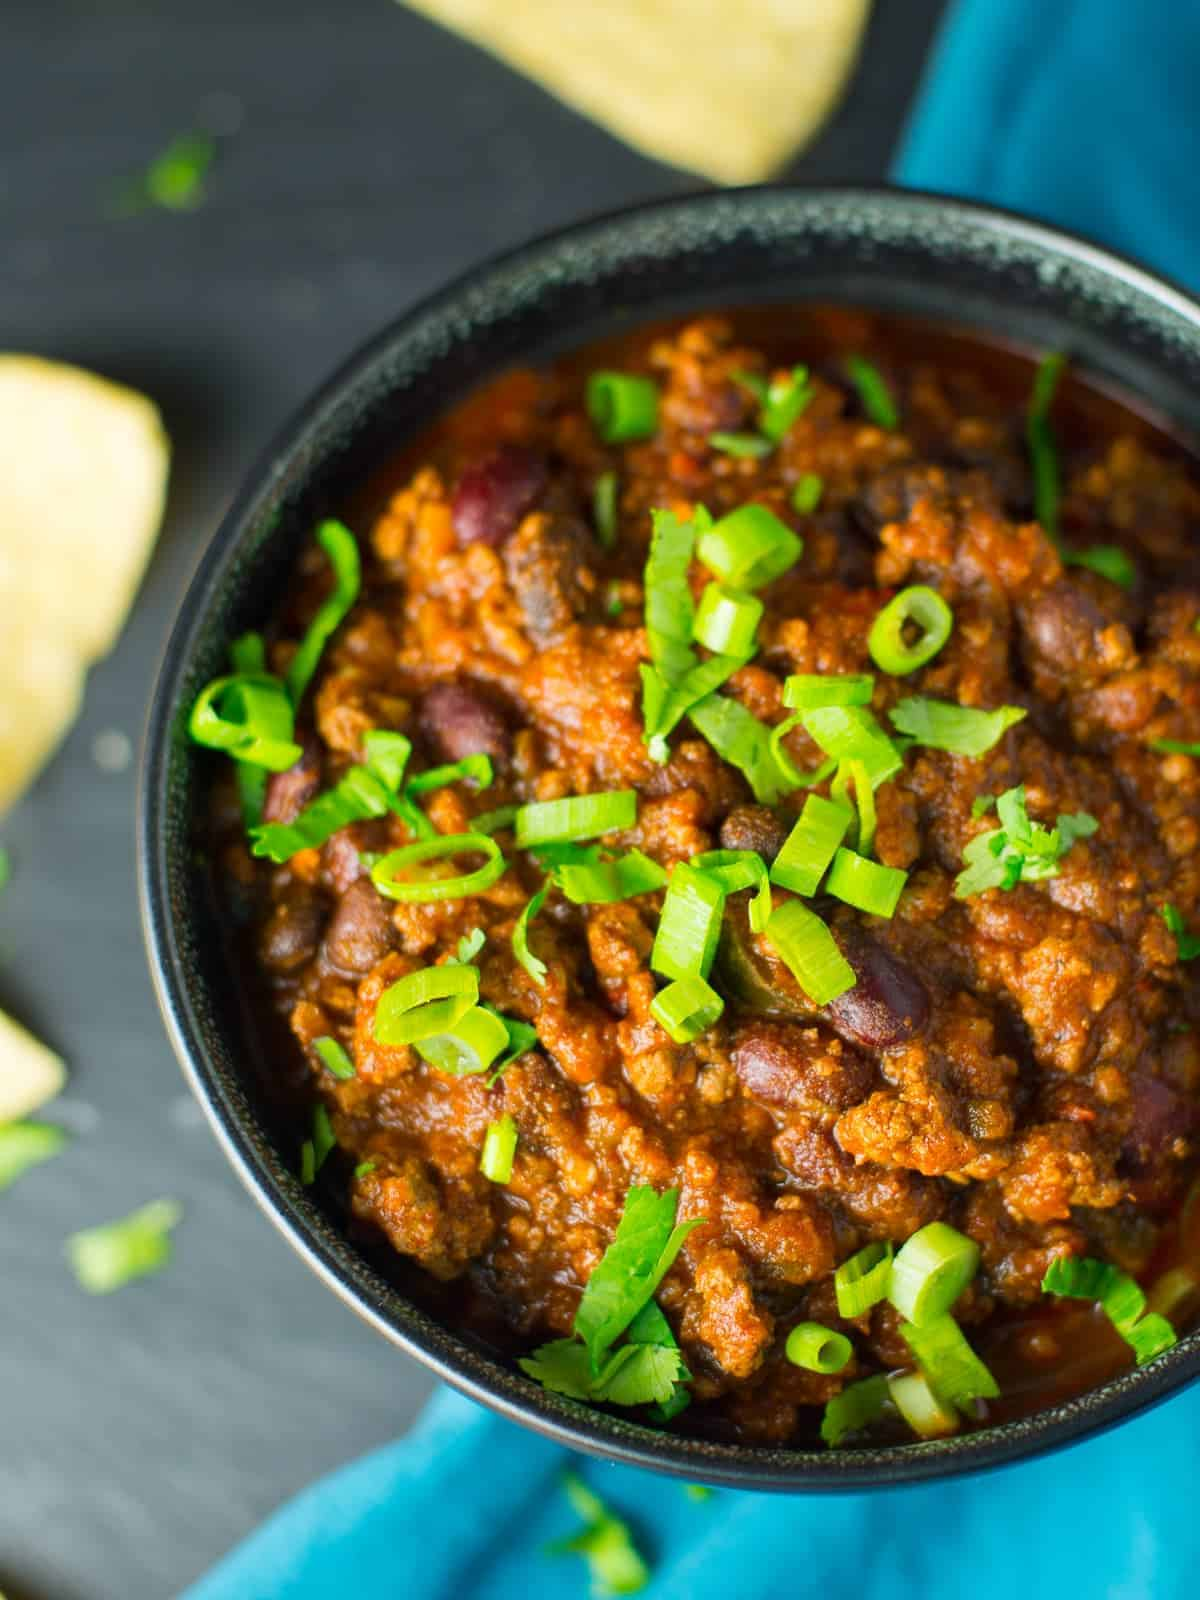 Easy chili recipe topped with fresh green onions.